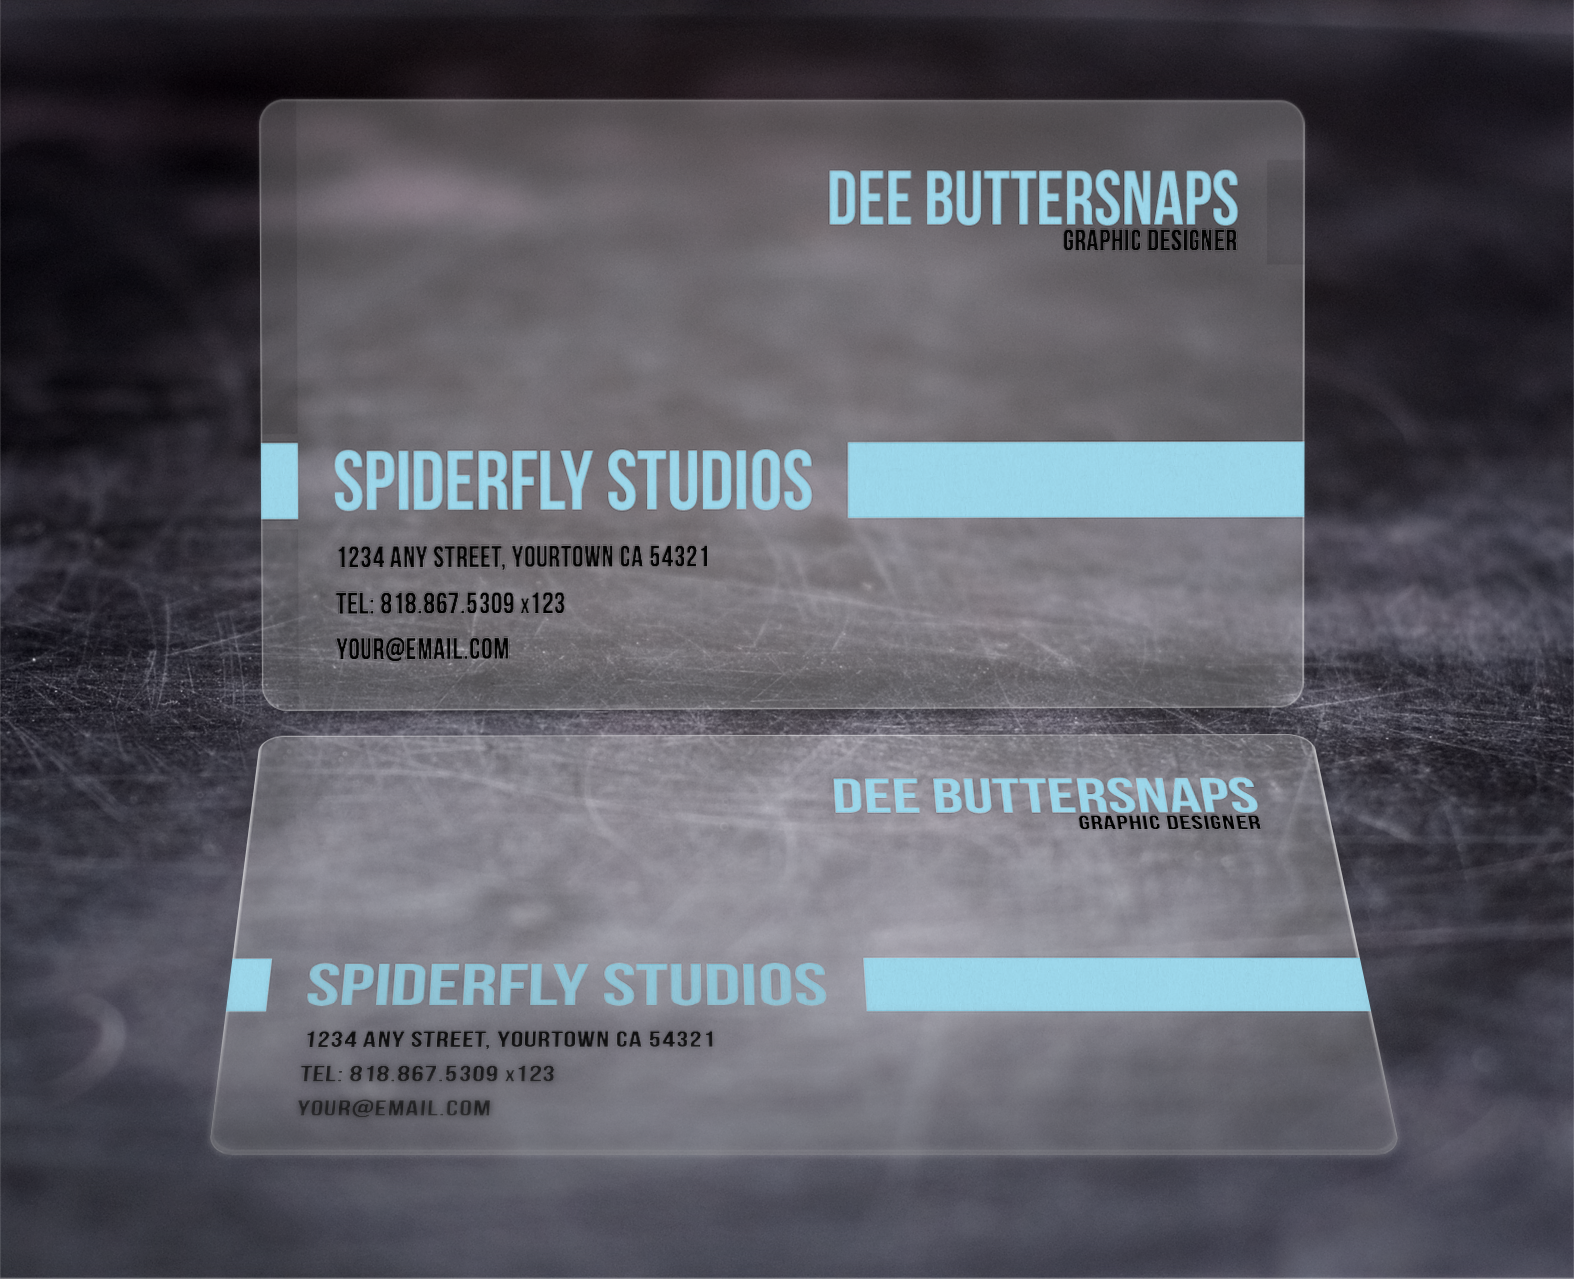 custom business cards – spiderfly studios